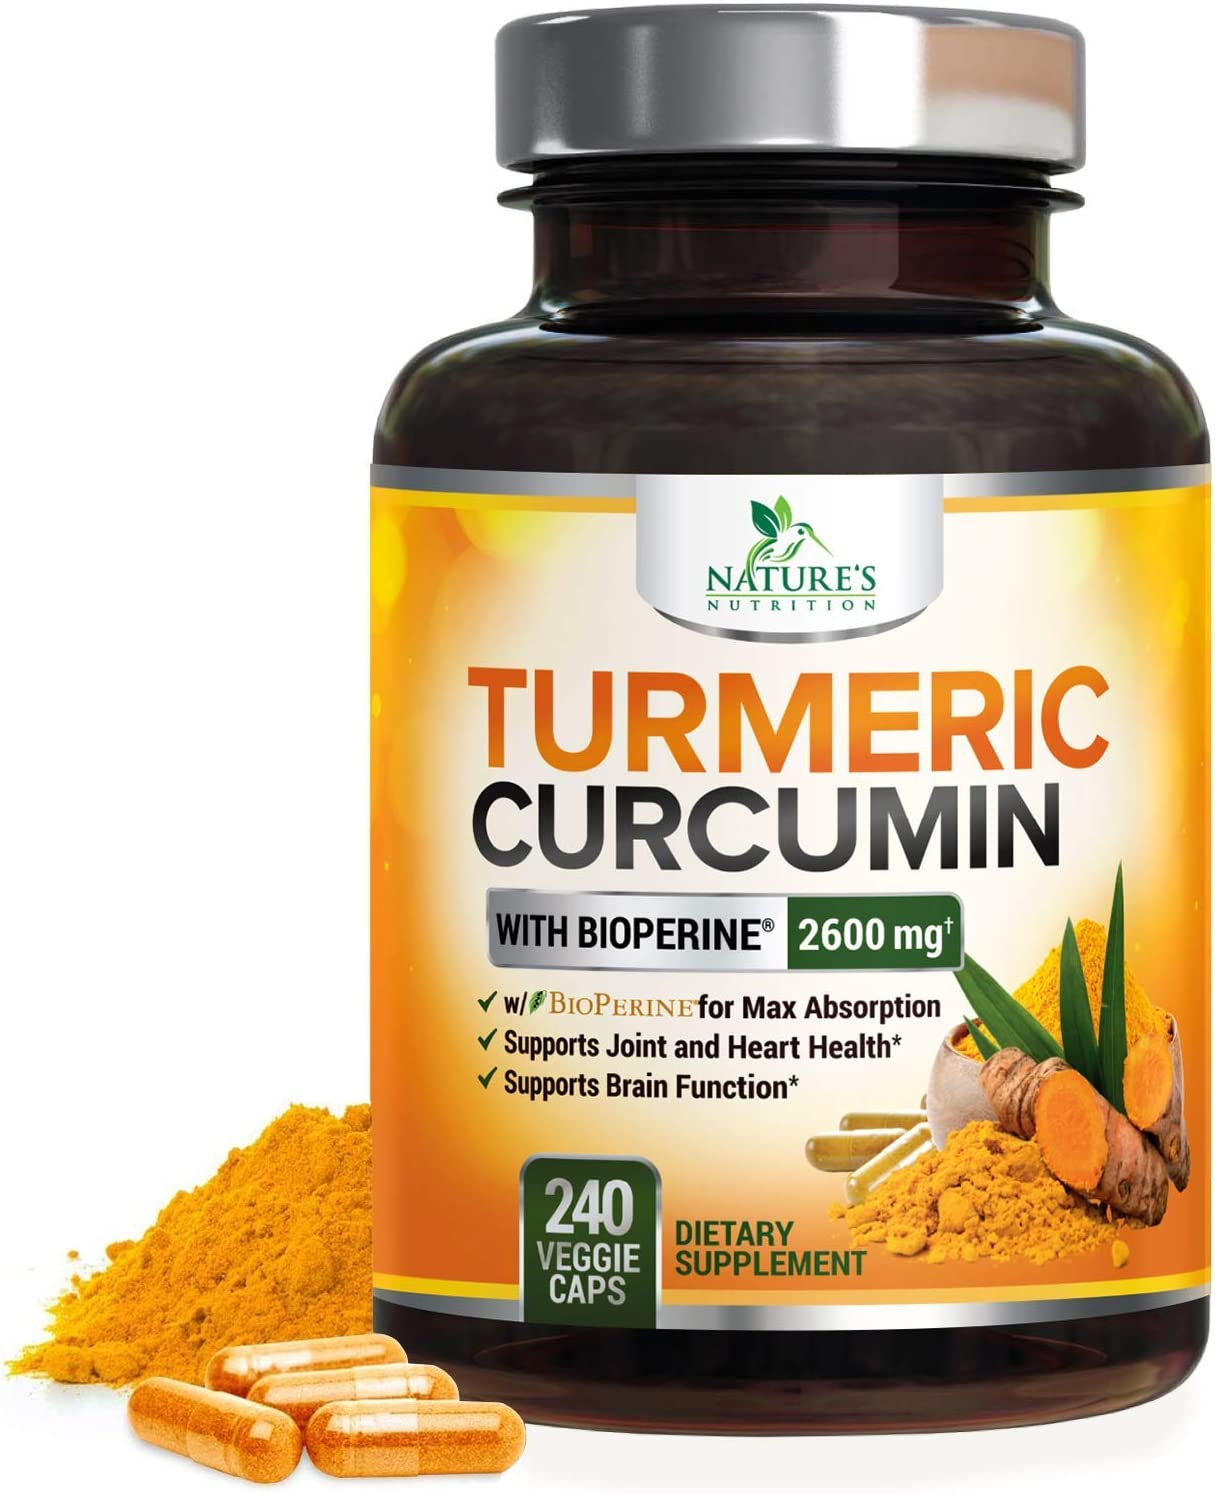 Turmeric Curcumin with Bioperine 95% Curcuminoids 2600mg with Black Pepper for Best Absorption, Made in USA, Best Vegan Joint Support, Turmeric Supplement Pills by Natures Nutrition - 240 Capsules